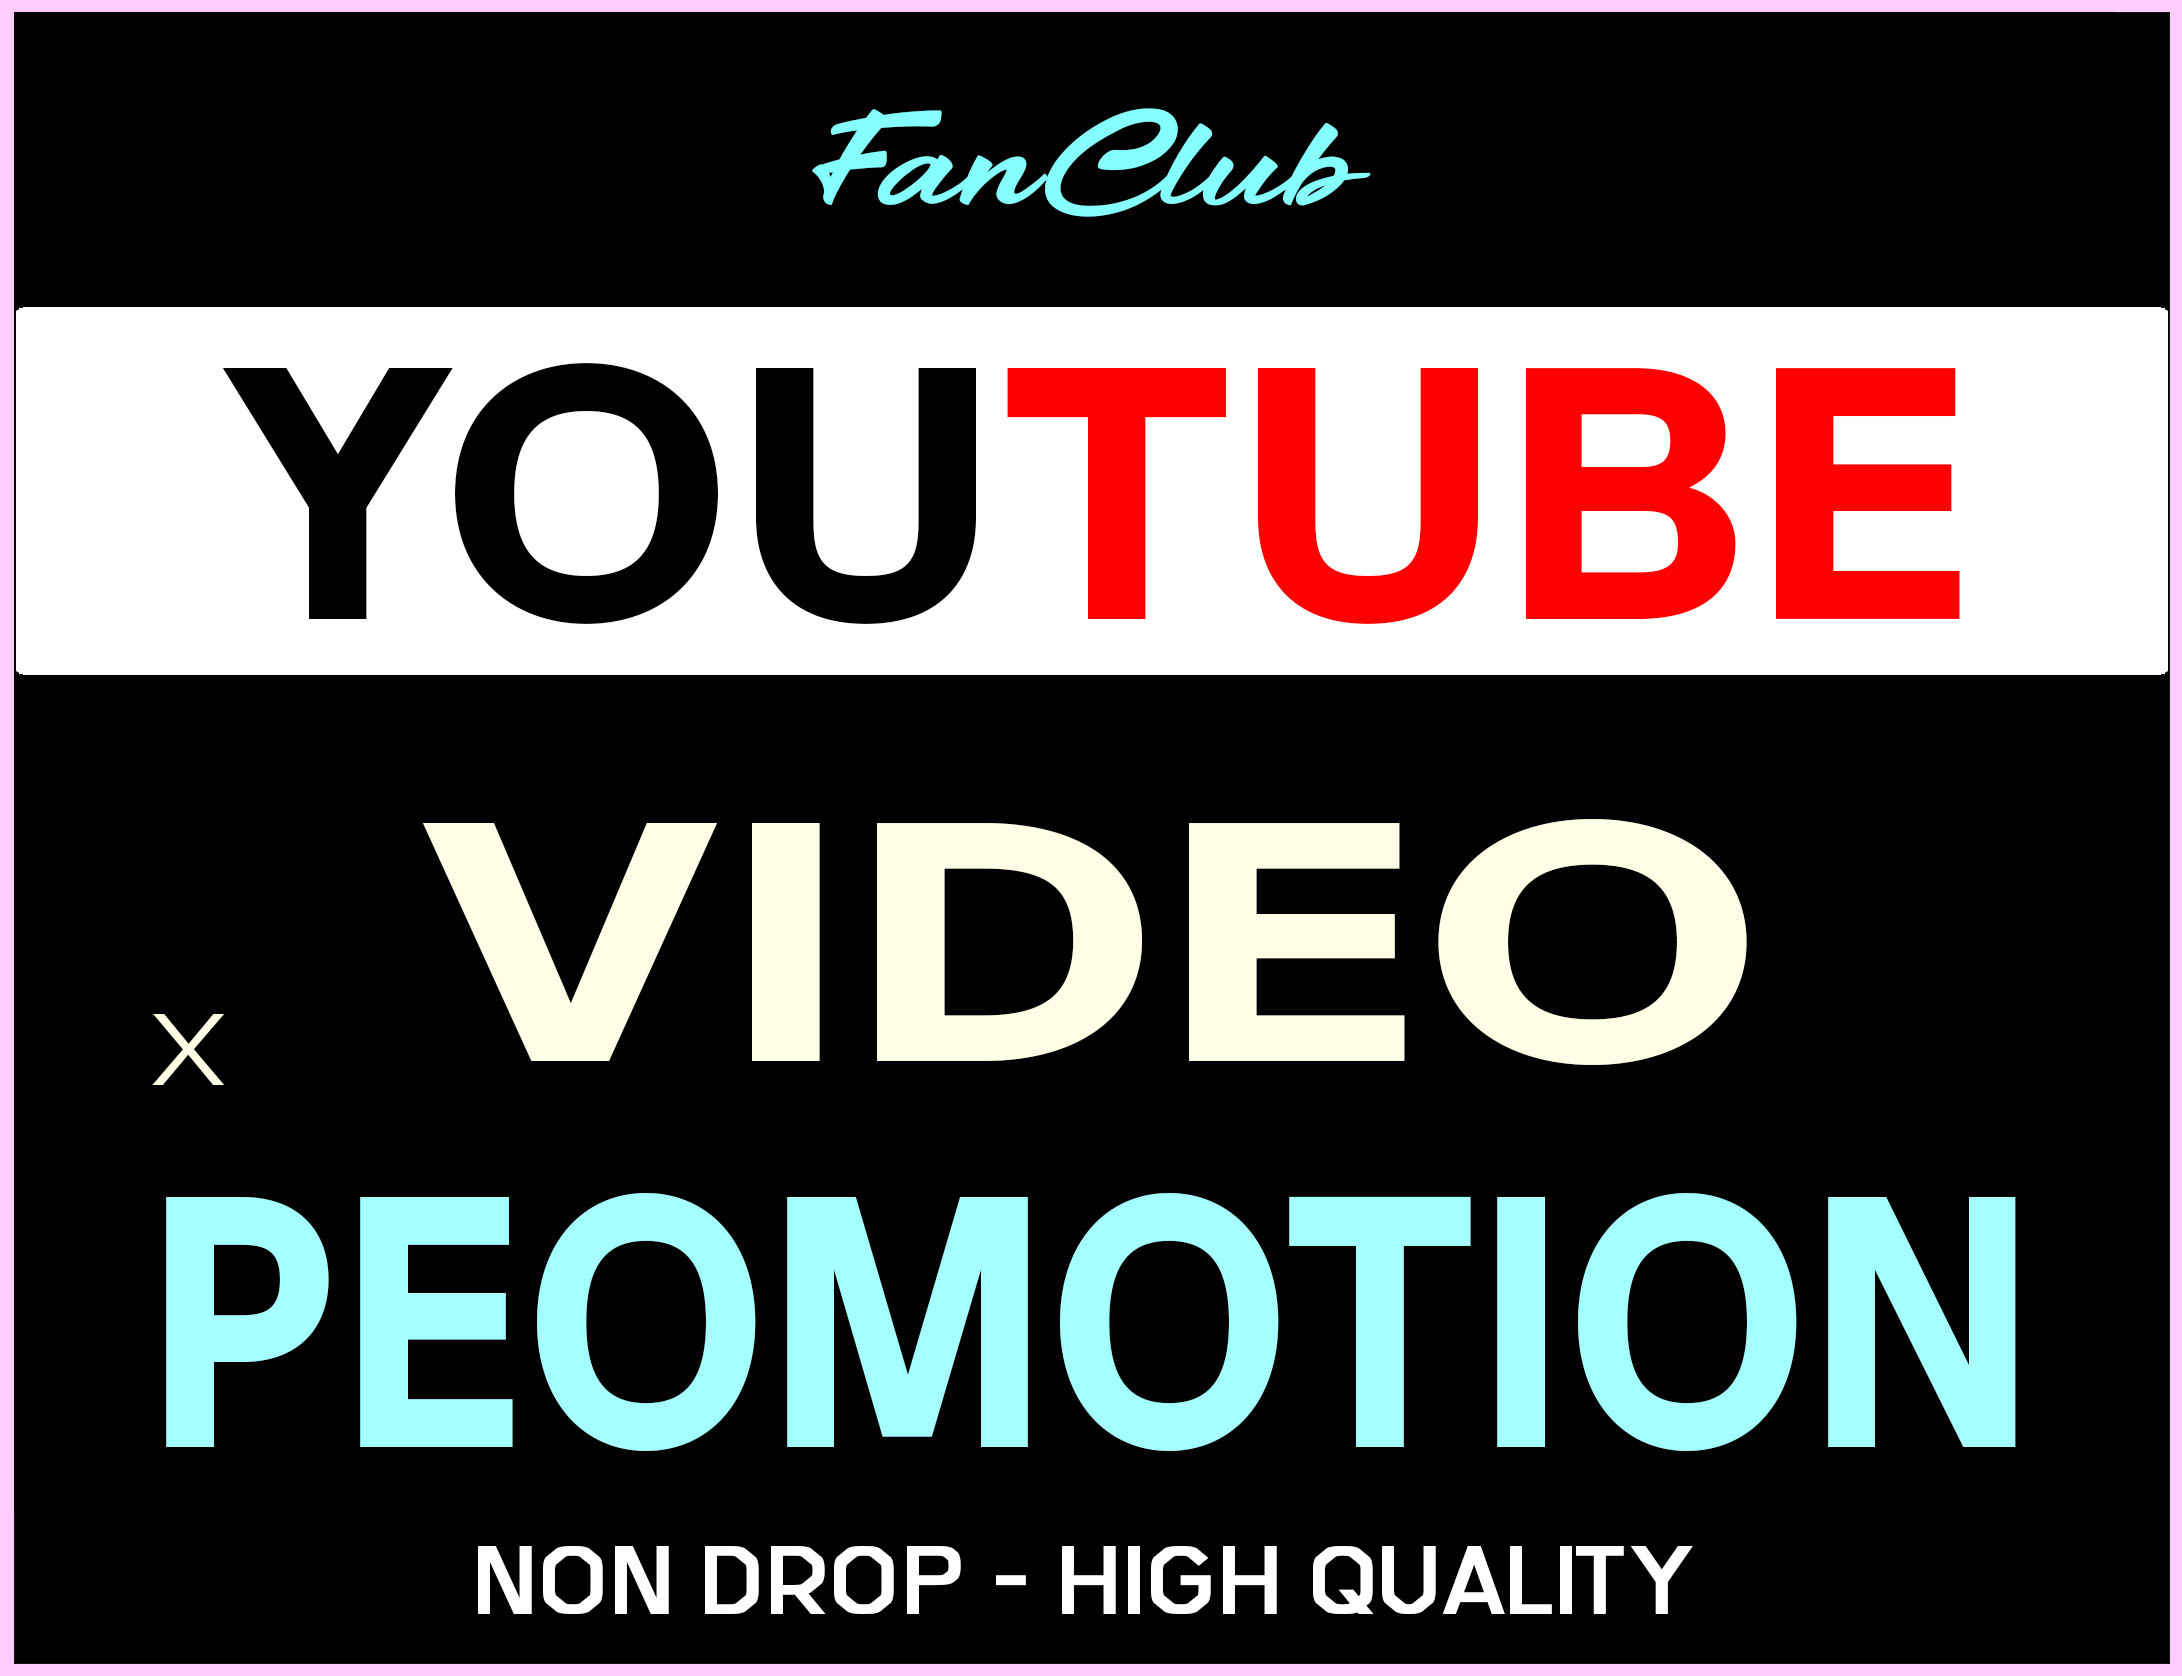 YOUTUBE VIDEO PROMOTION REAL ORGANIC AND SUPER FAST WITH LIFE TIME GUARANTEED